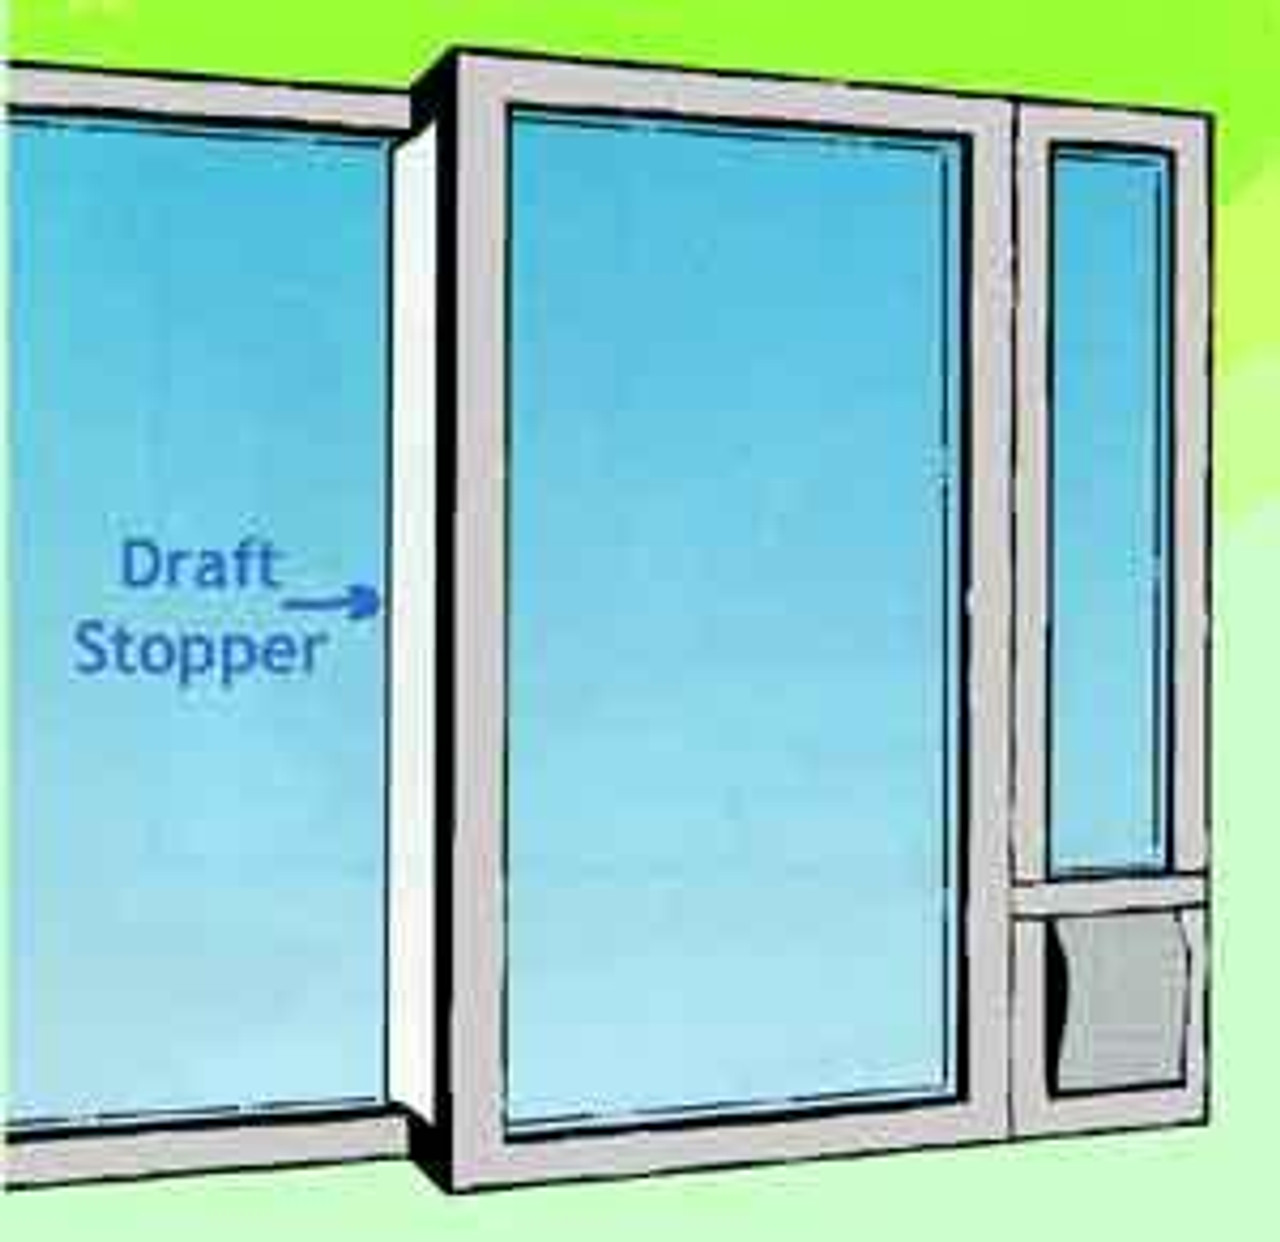 Charmant The Draft Stopper Weatherstrip Attaches To The Back End Of The Sliding  Glass Door And Seals